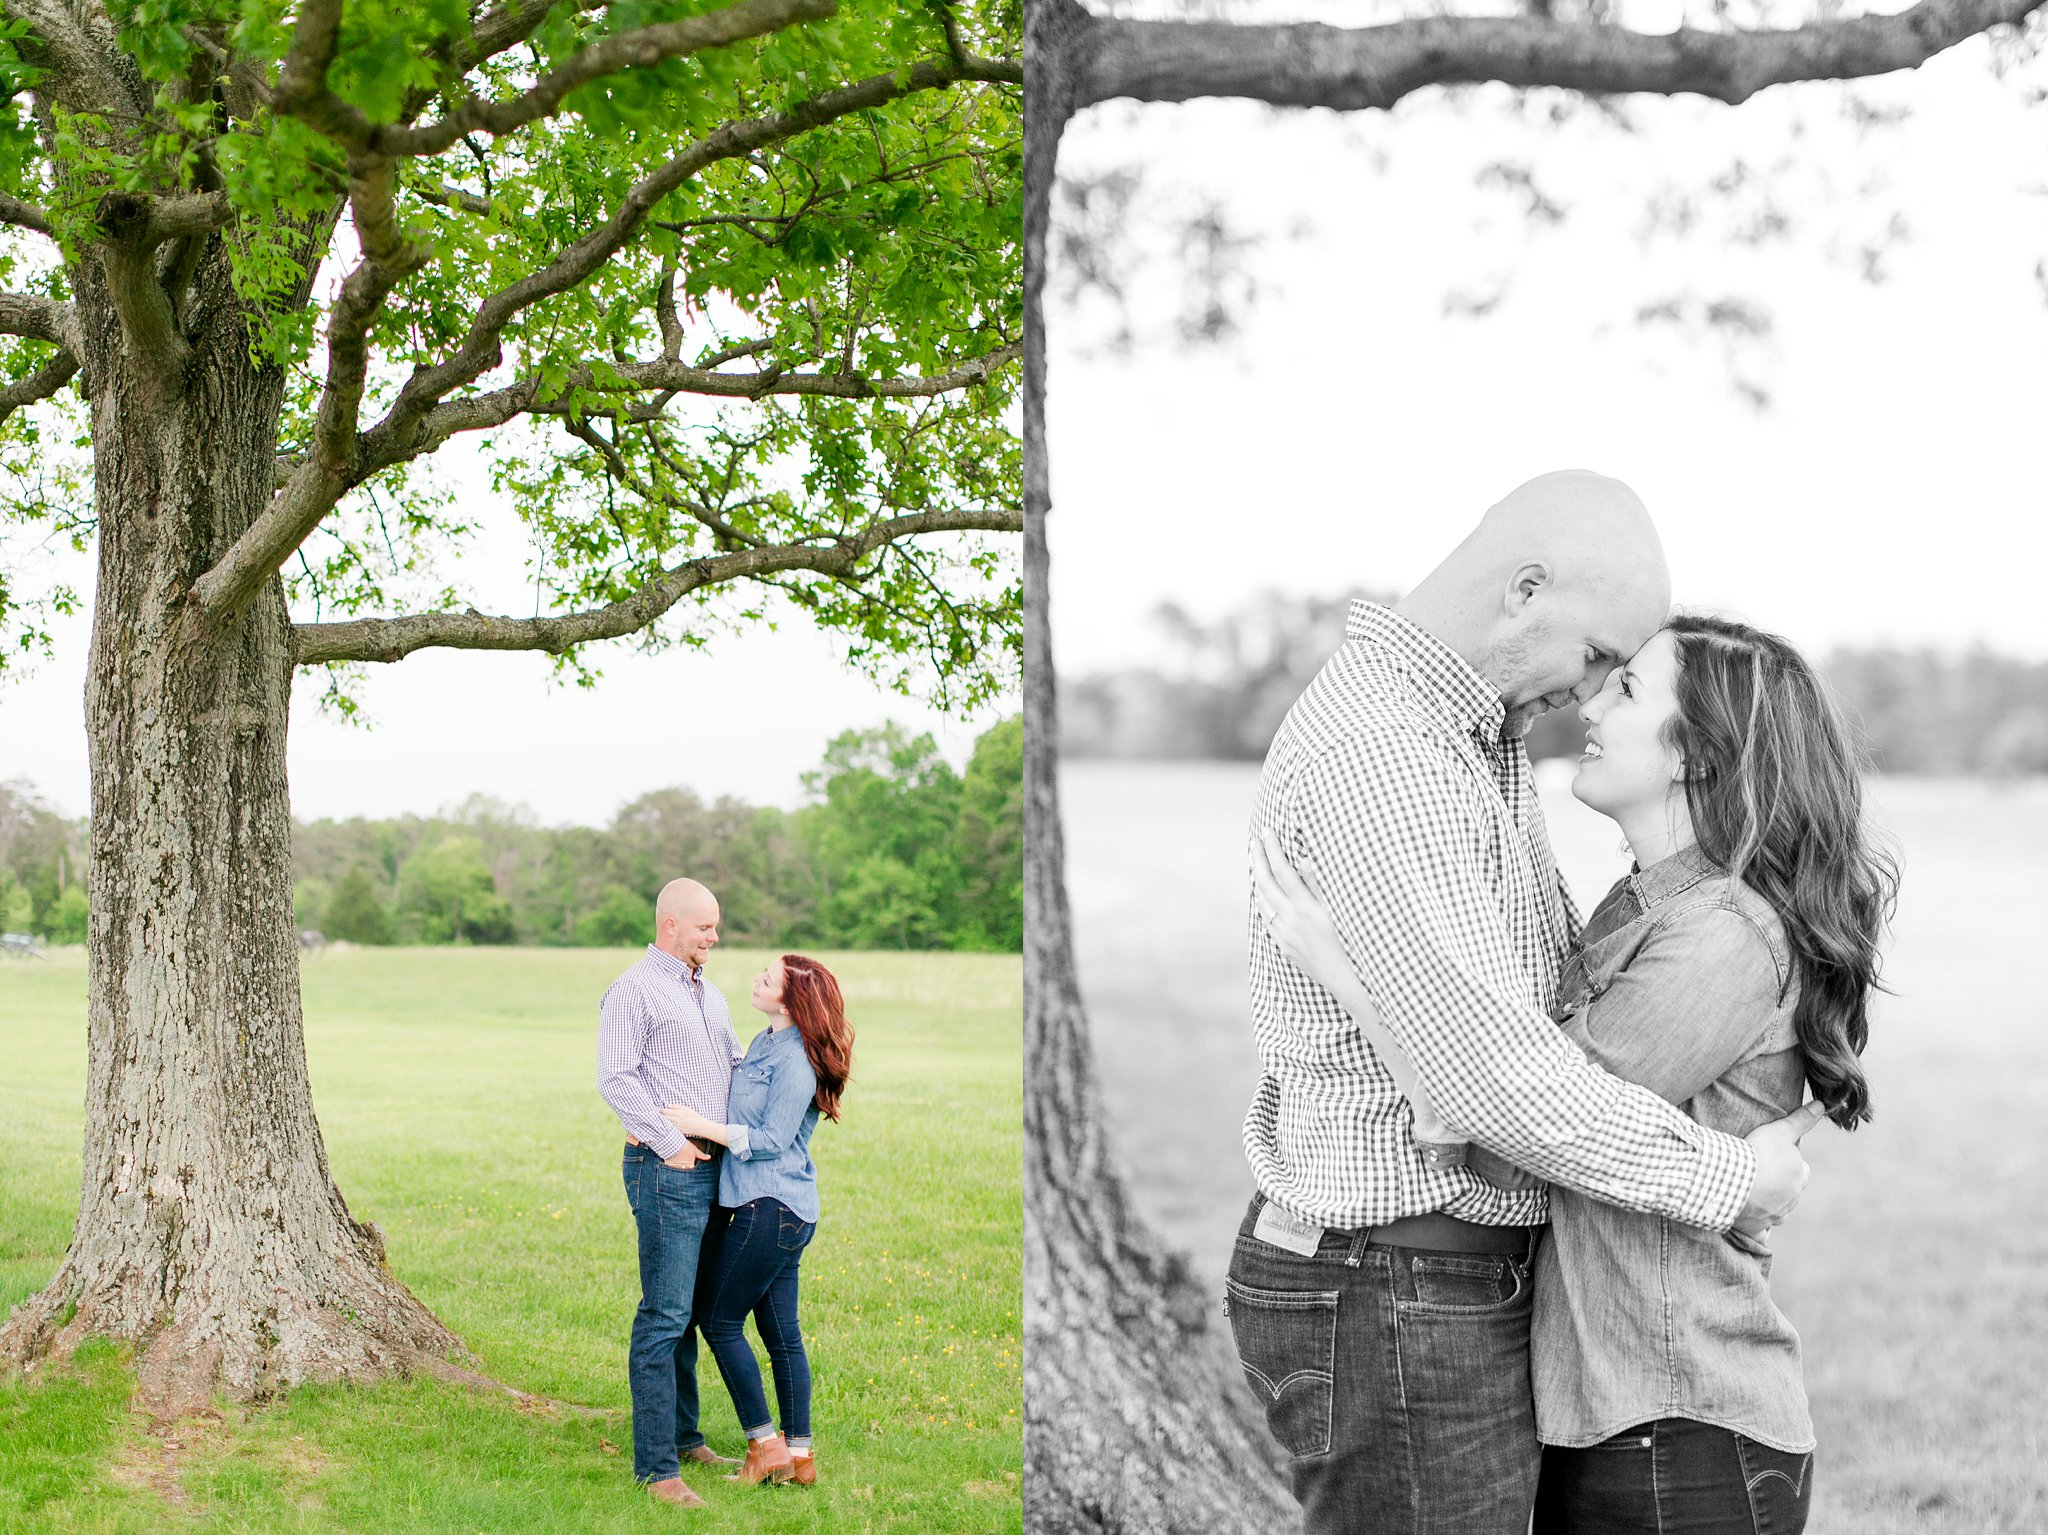 Old Town Manassas Battlefield Engagement Photos Virginia Wedding Photographer Jessica & Jason-174.jpg